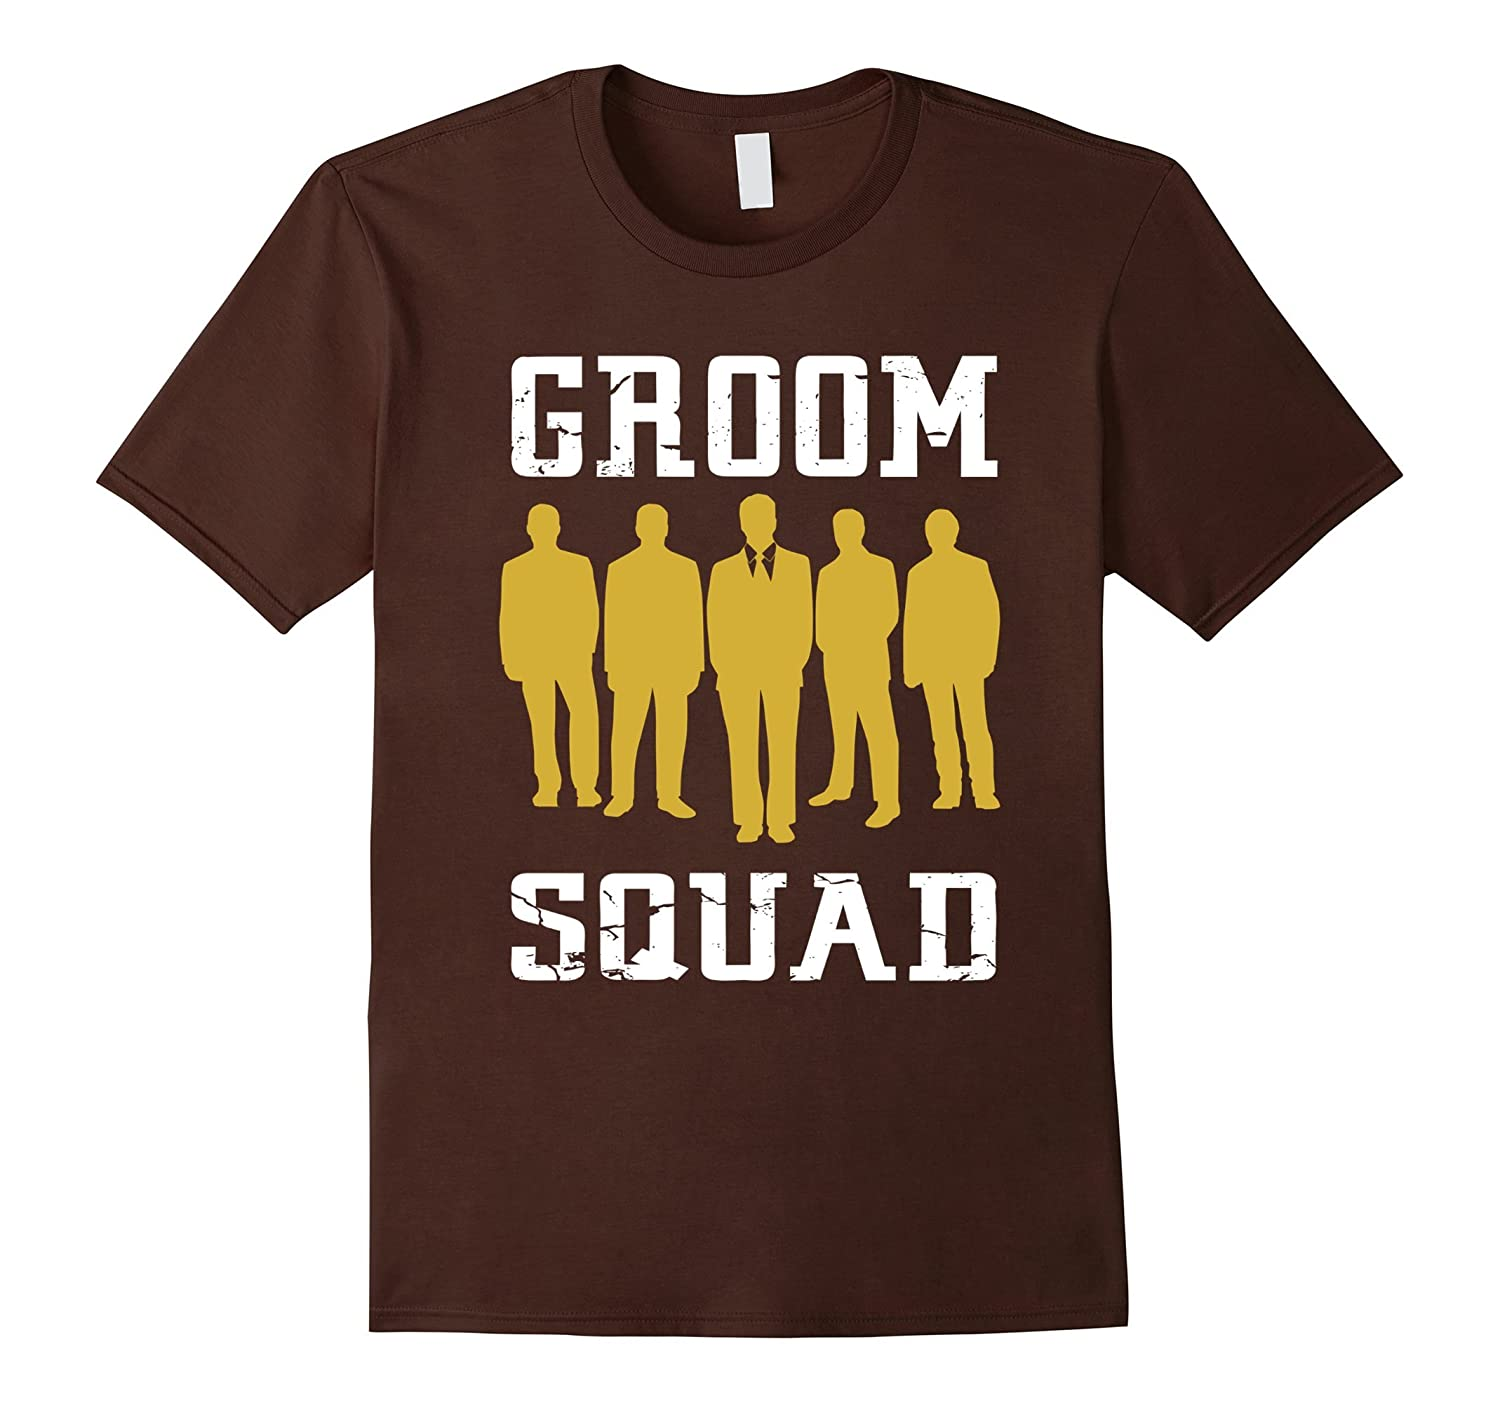 Groom squad t shirt black and gold groomsmen shirt rt for Bucket squad gold shirt